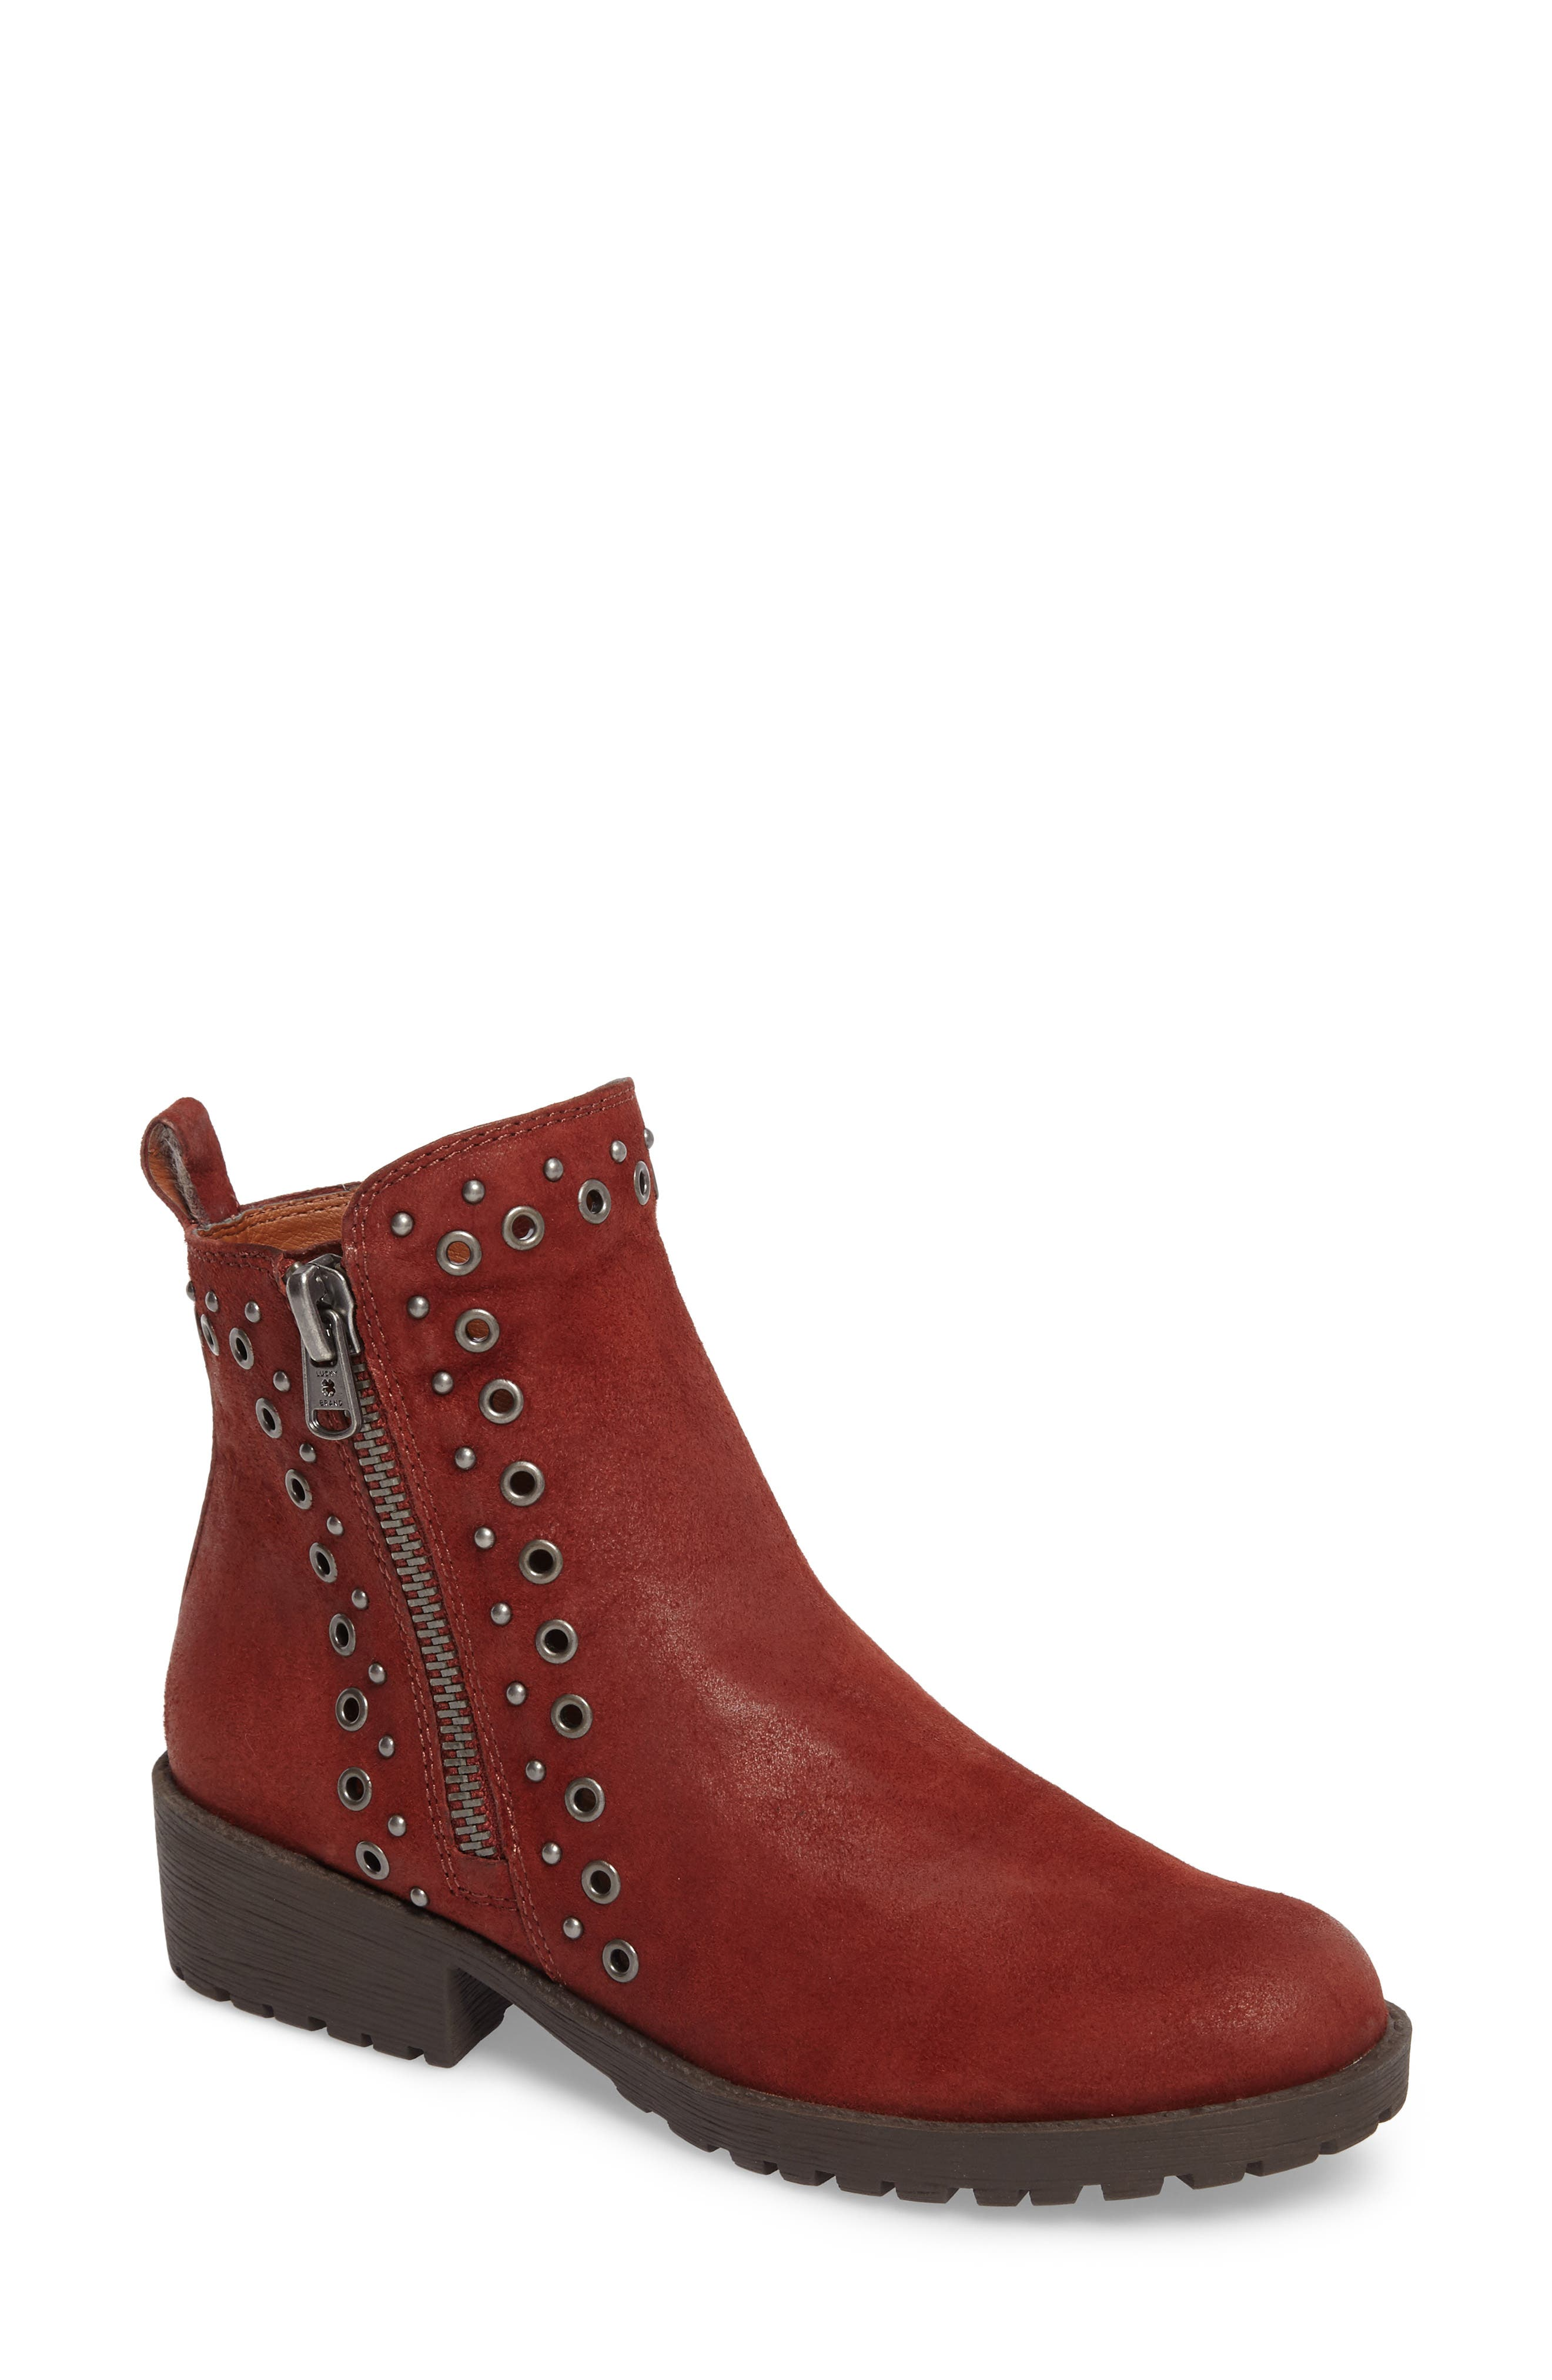 Hannie Embellished Bootie,                             Main thumbnail 1, color,                             Sable Leather